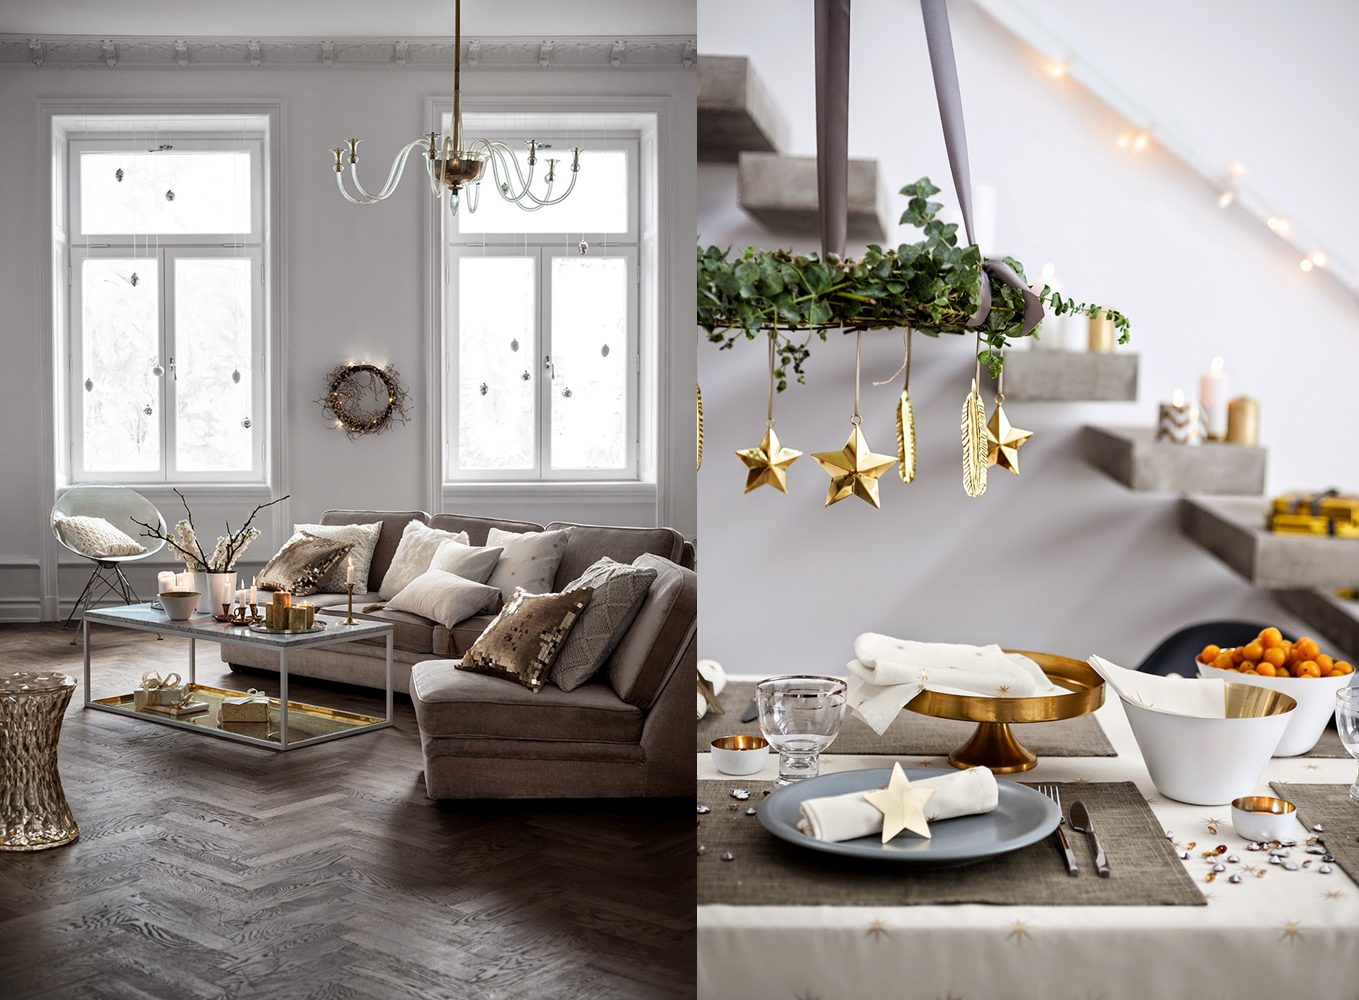 Decoracion Hogar Tendencias 2015 Of Decoraci N F Cil Tendencias Navidad 2014 2015 Segun H M Home